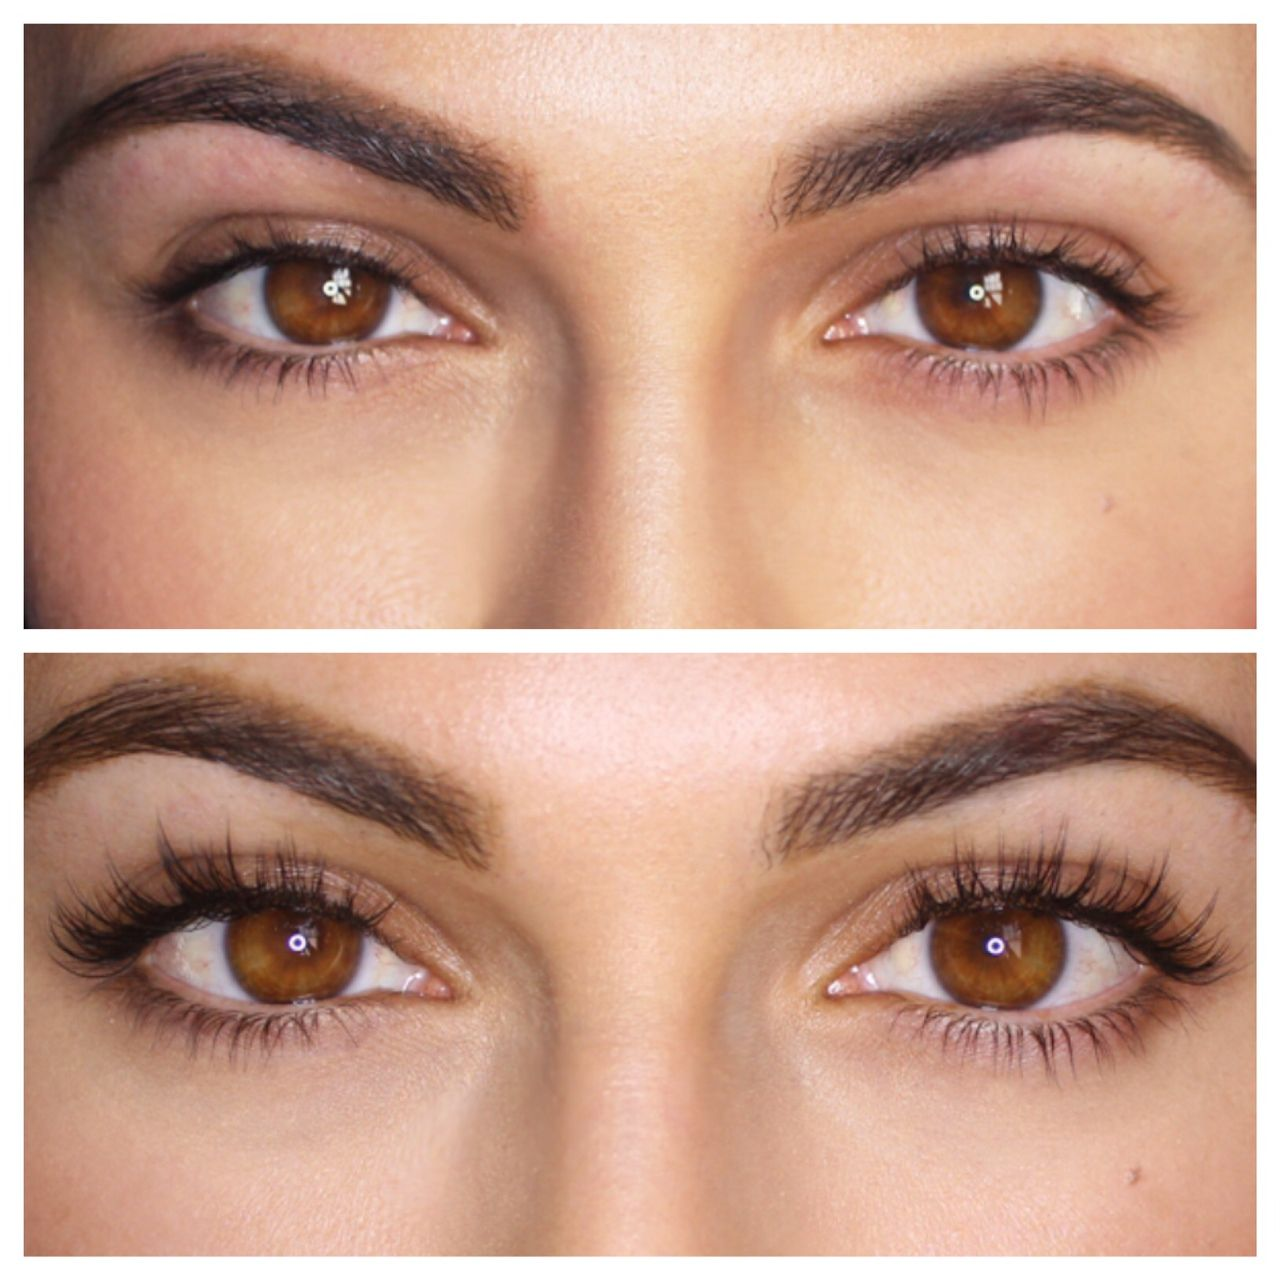 Lash Extensions Before And After Makeup Ideas In 2018 Pinterest